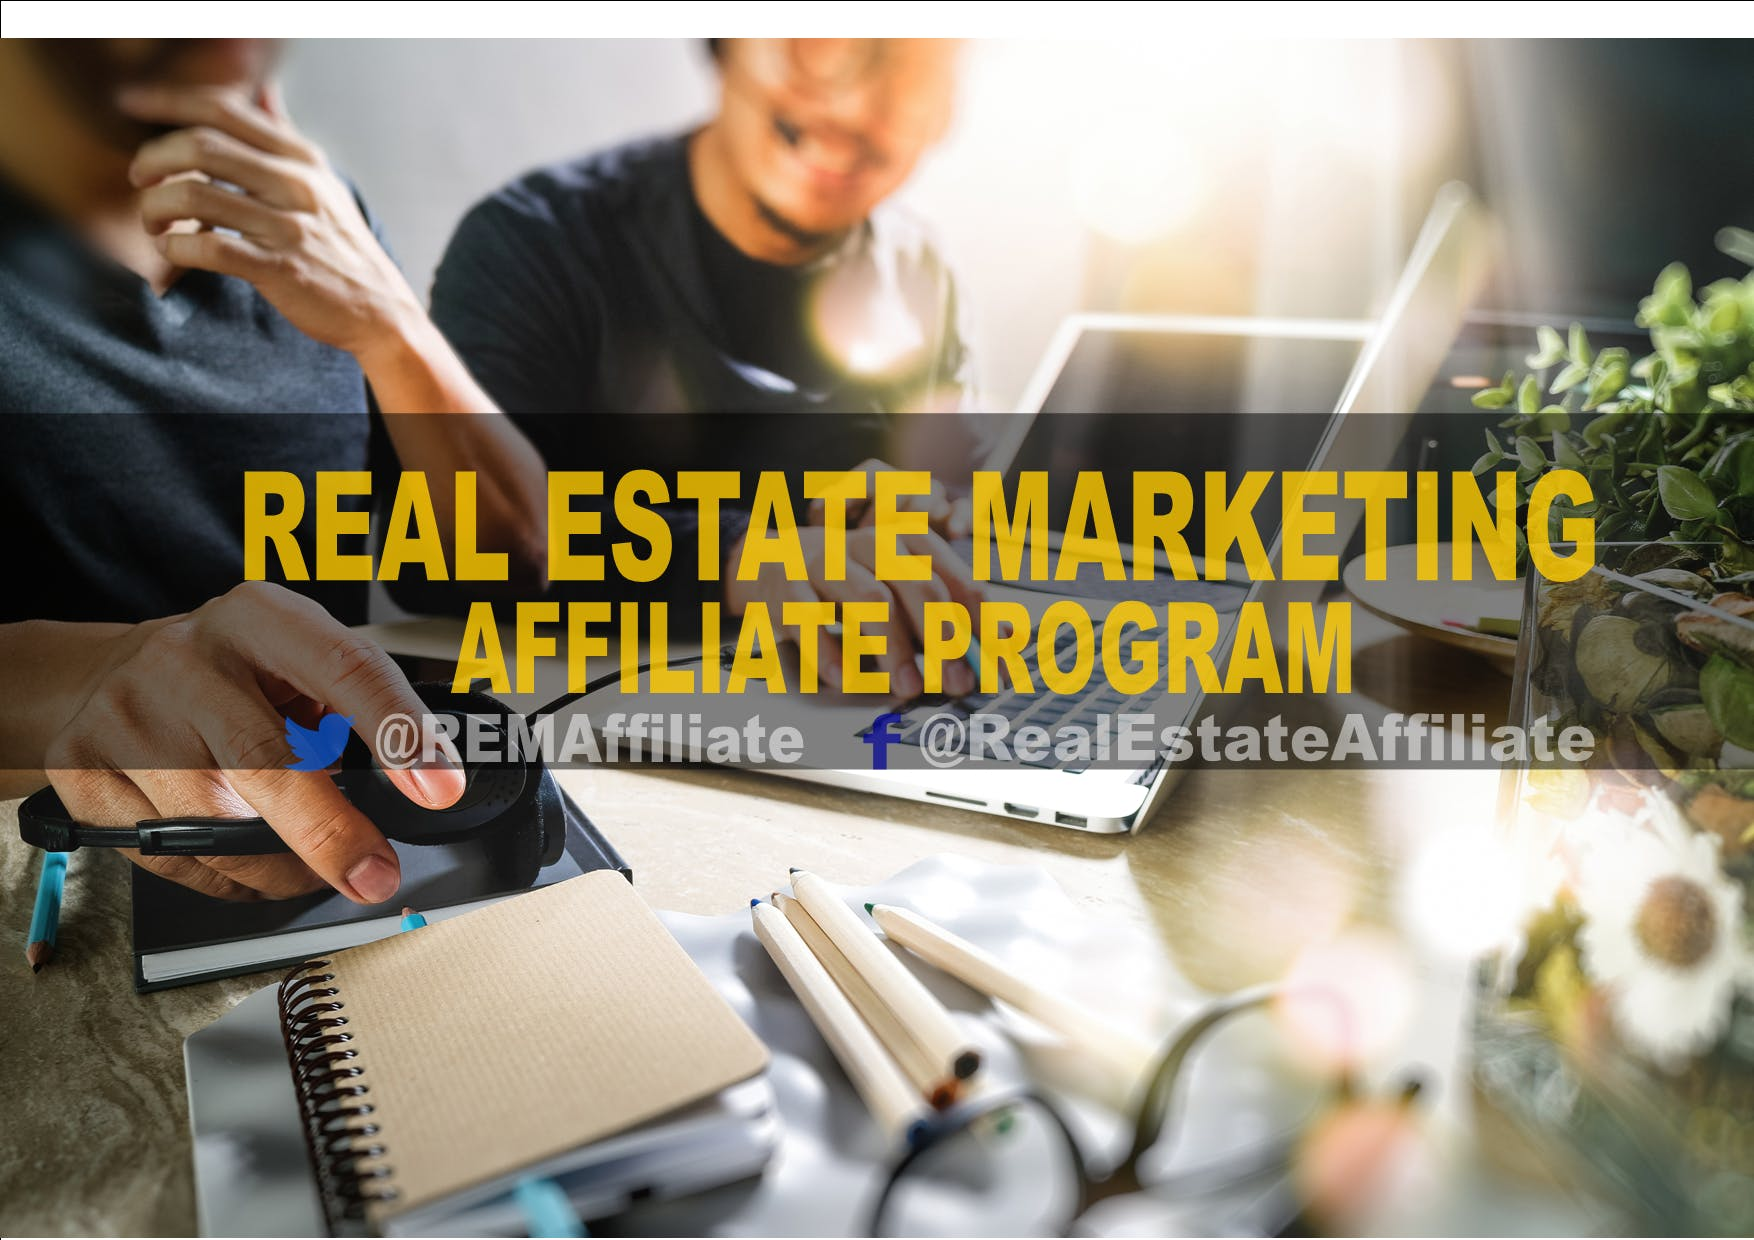 Real Estate Affiliate and Marketing Program - Manhattan NY